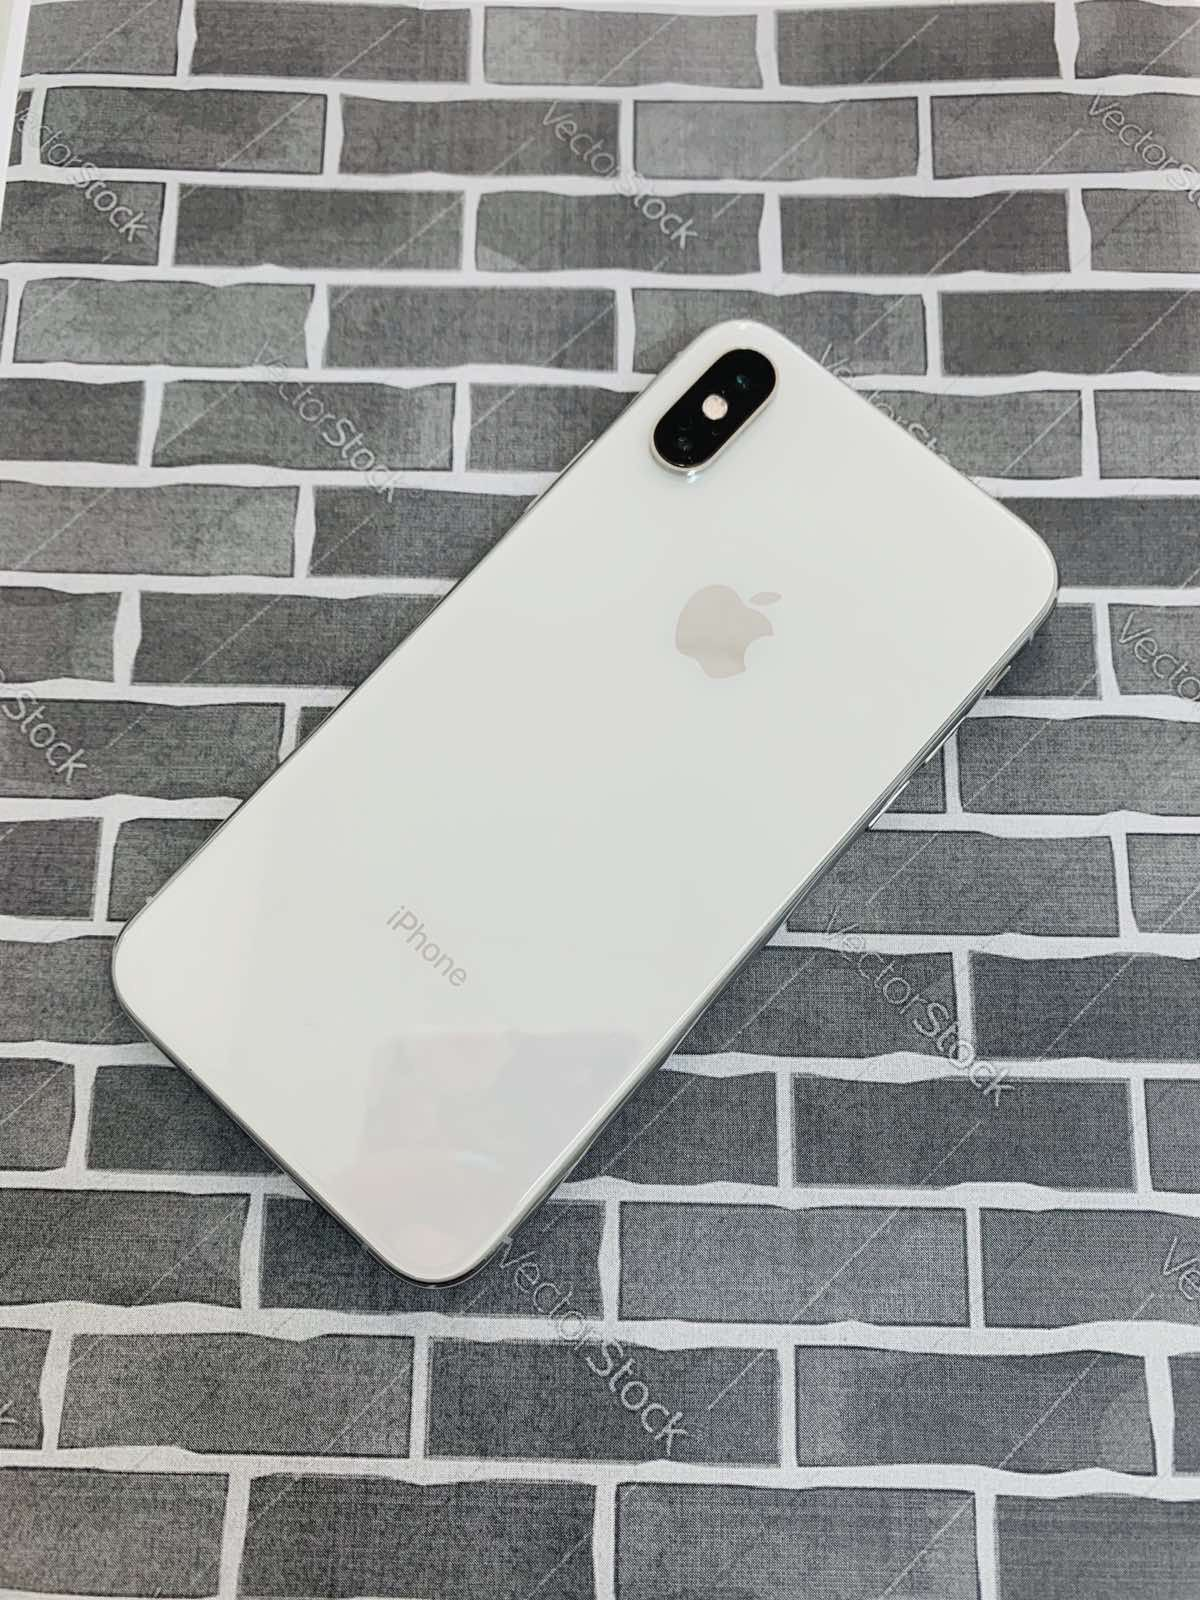 iPhone XS (64 GB) Excellent Condition With Warranty